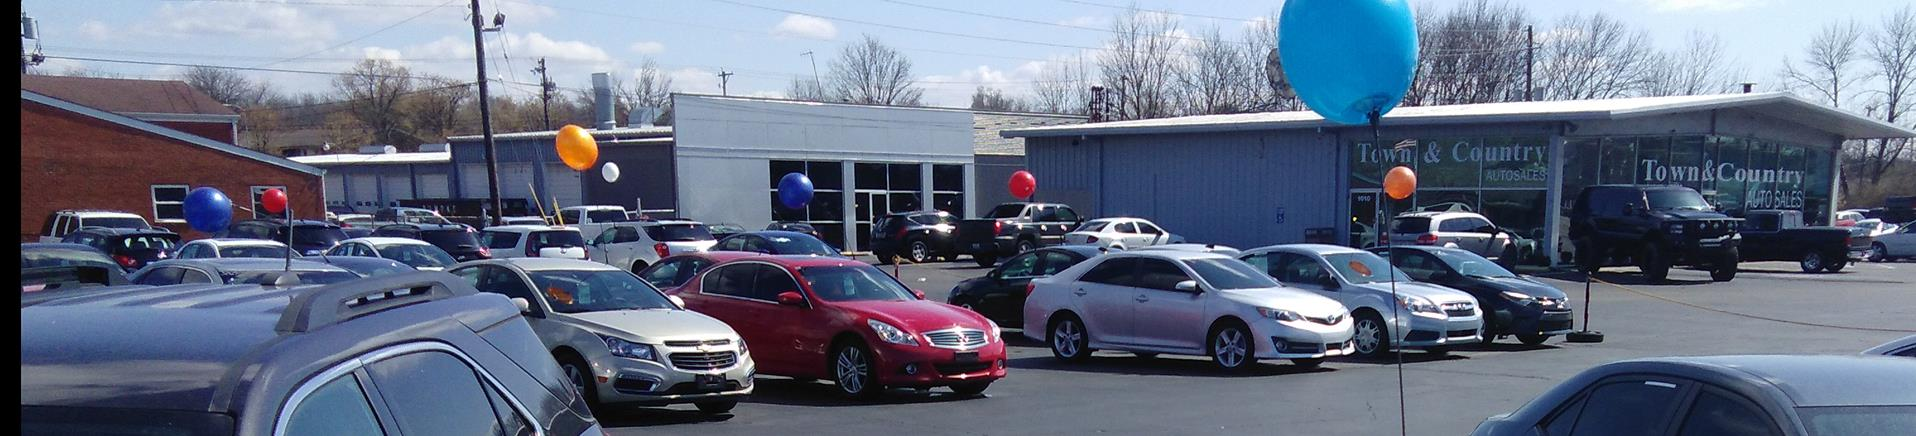 Used Cars Winchester KY   Used Cars & Trucks KY   Town & Country ...